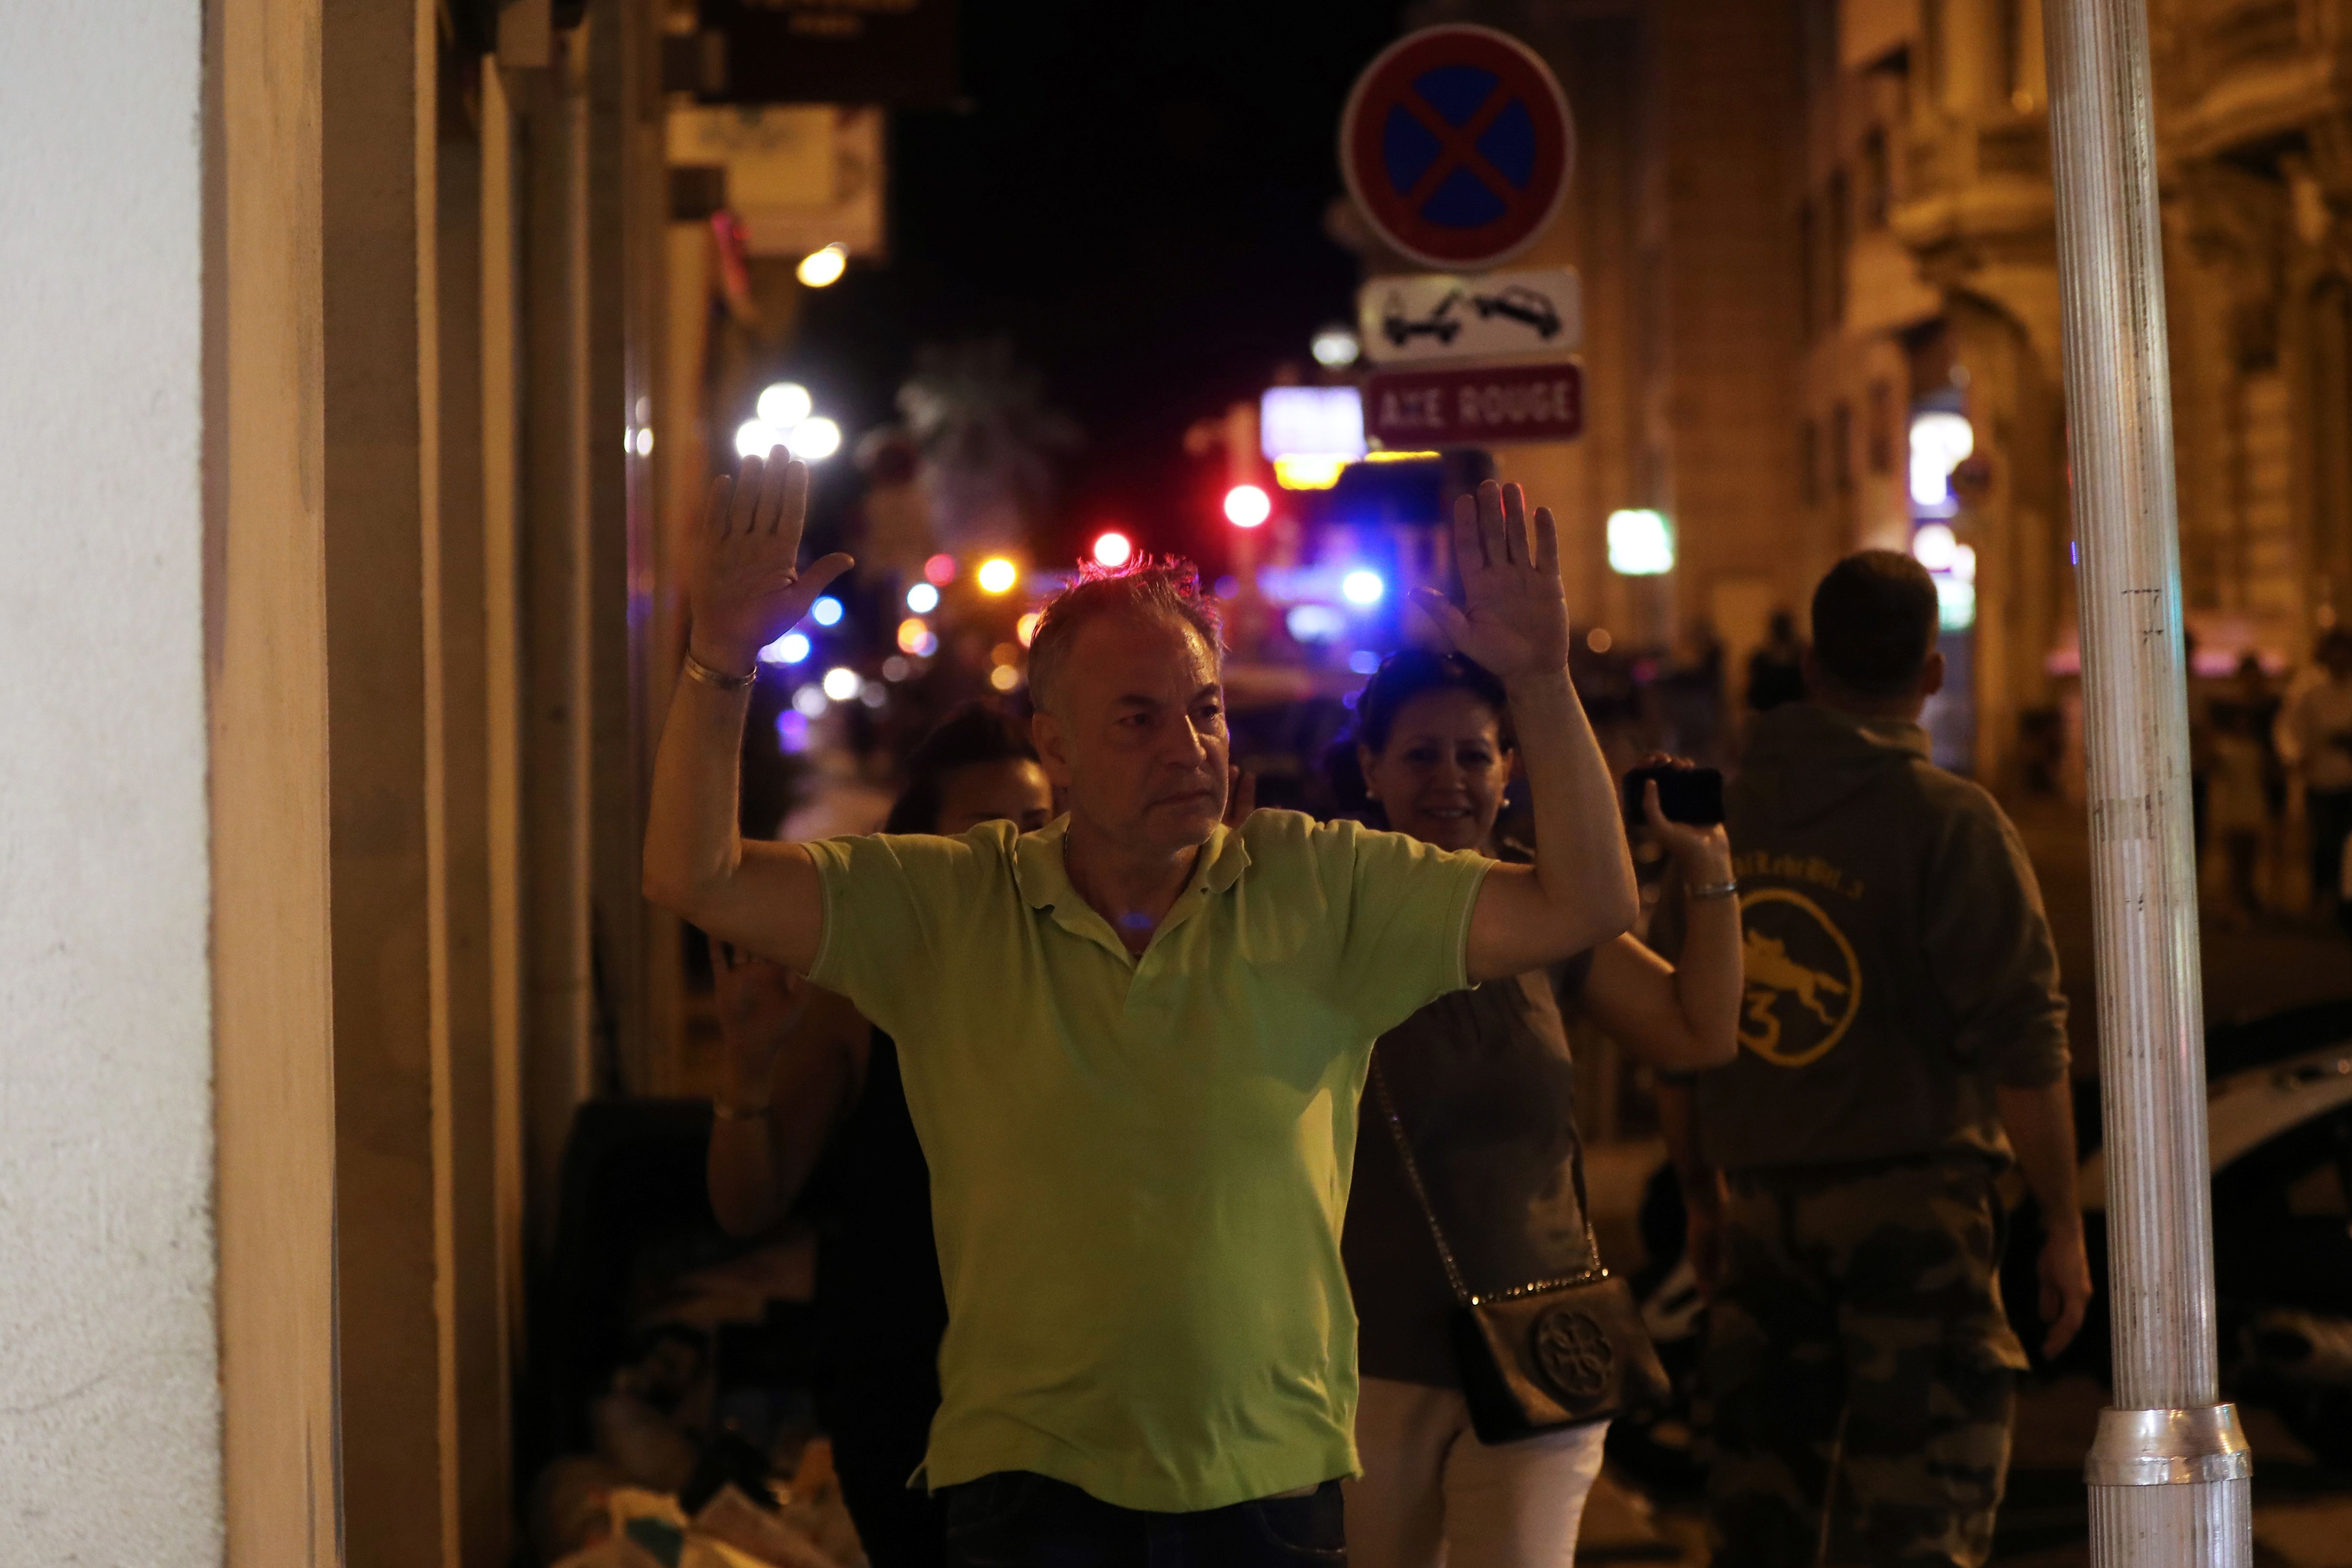 Bastille Day: A man raises his hands for police checks after a truck kills dozens in Nice, France.